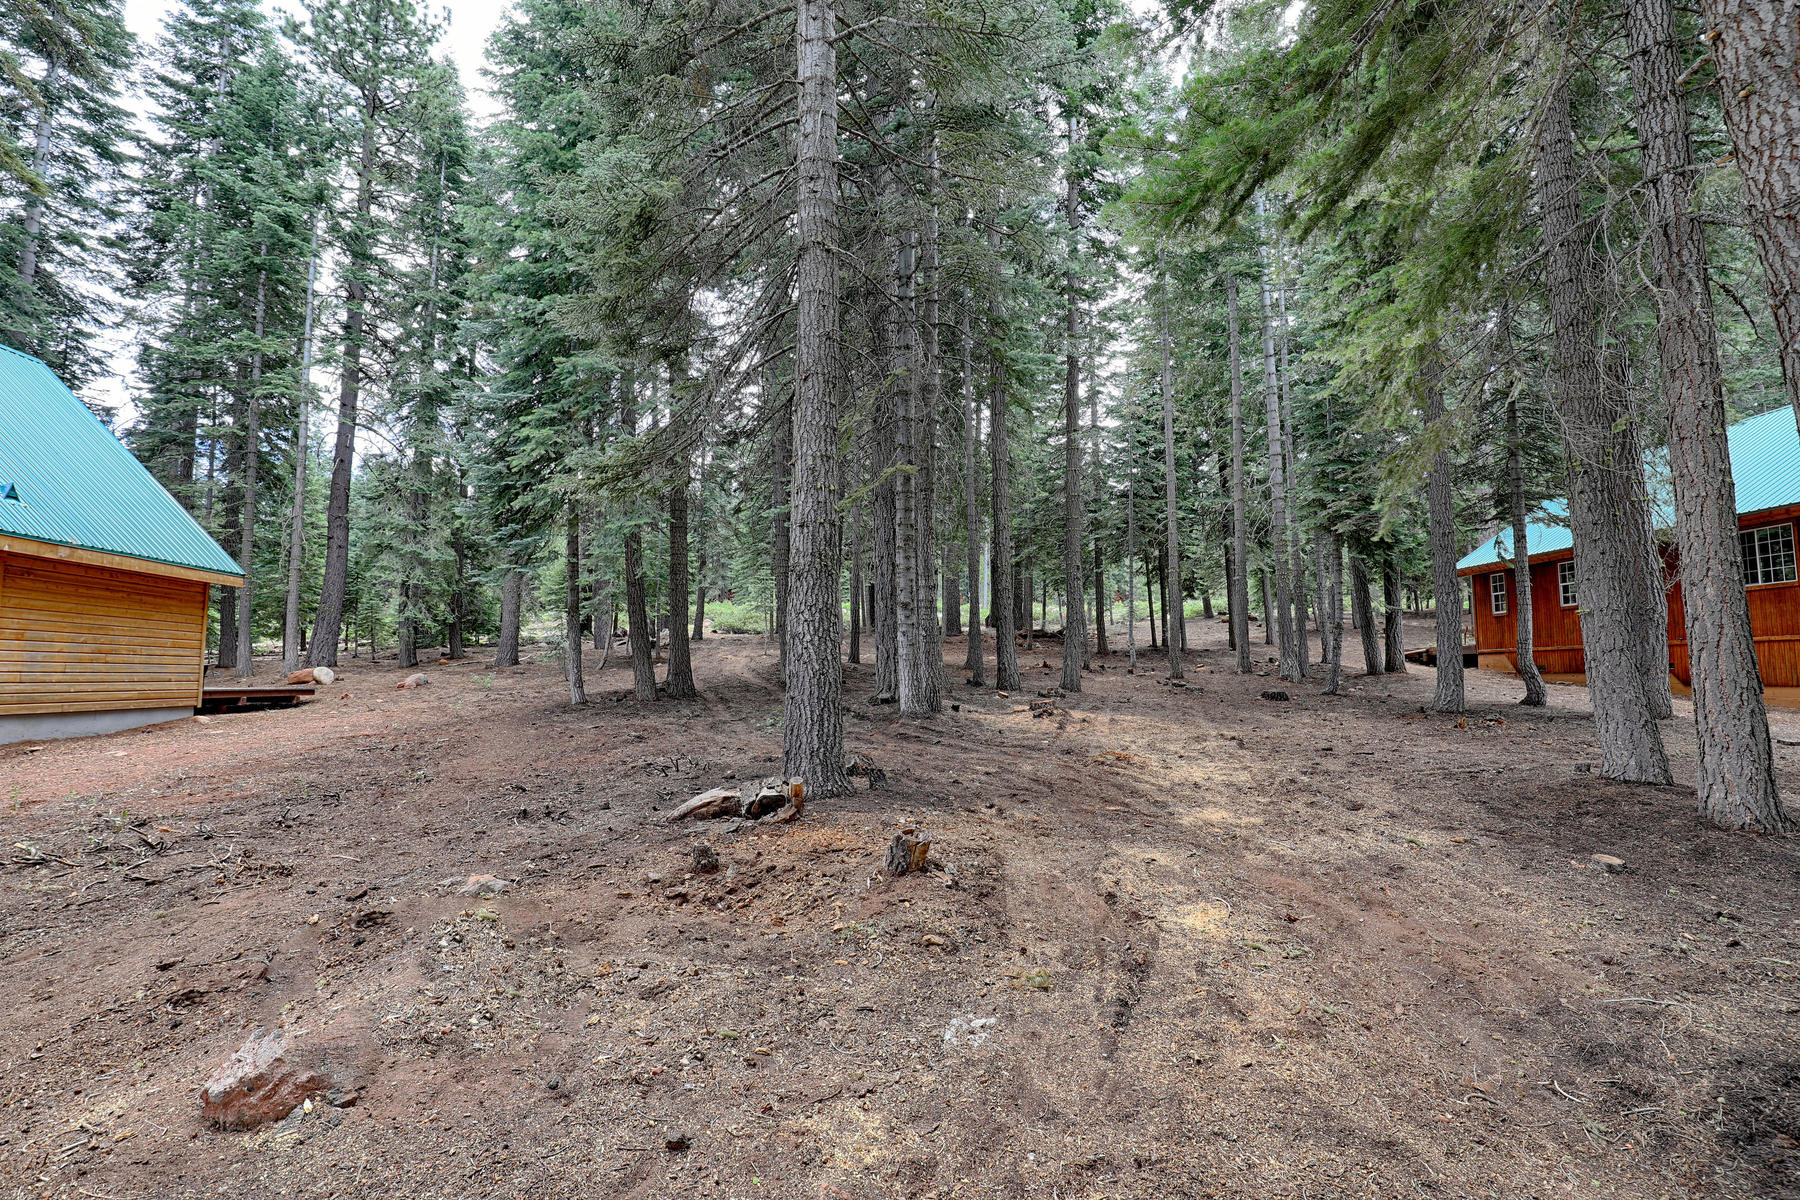 Additional photo for property listing at 13921 Copenhagen Drive, Truckee, CA 96161 13921 Copenhagen Drive Truckee, California 96161 United States